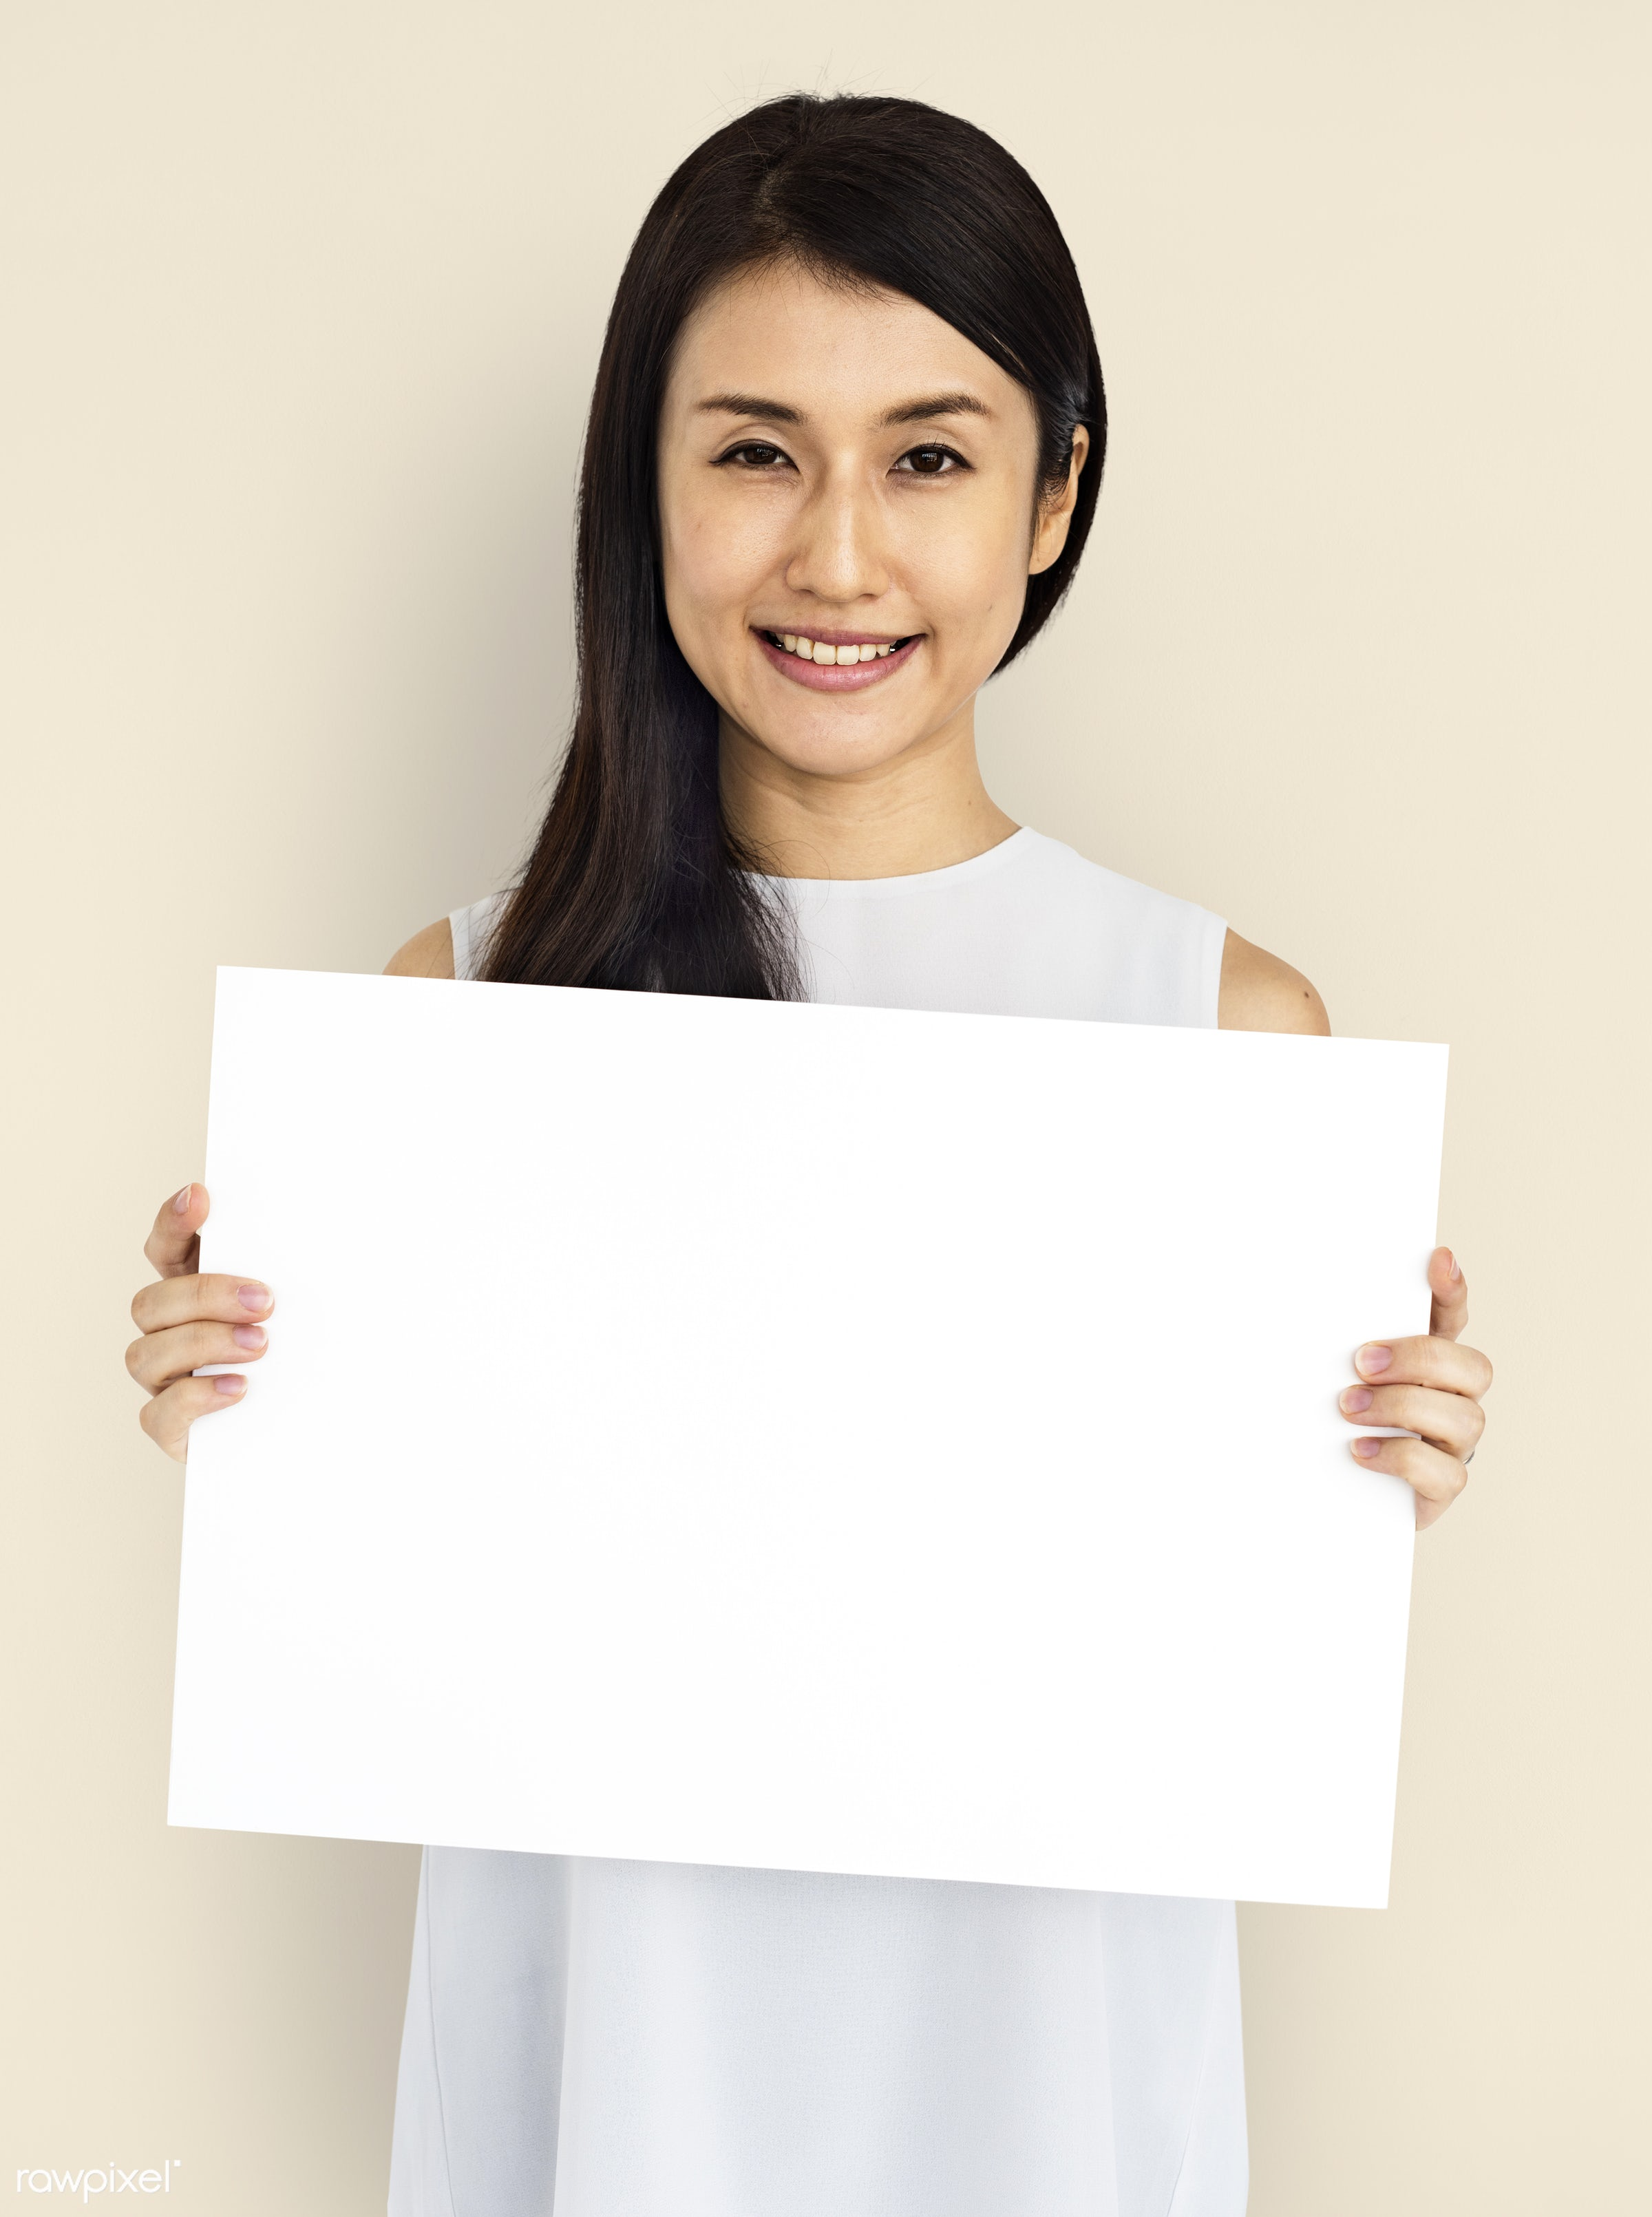 studio, expression, person, illustration, placard, woman, smiling, isolated, creative, image, symbolic, happiness, board,...